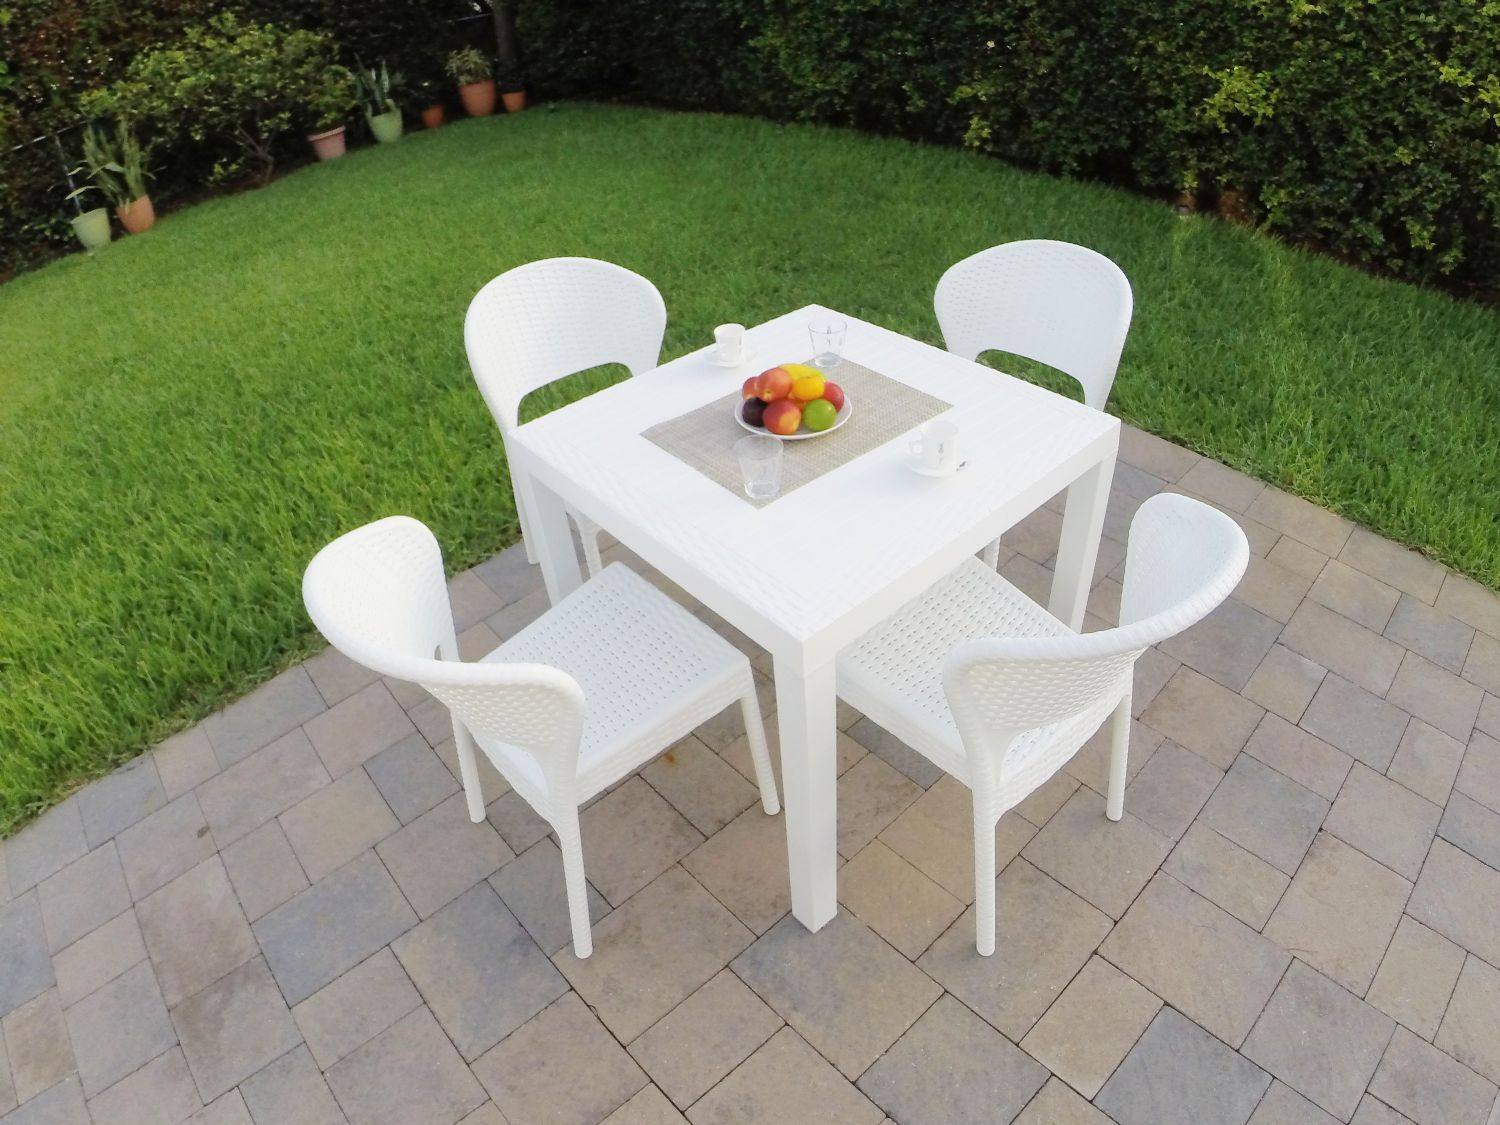 Daytona Wickerlook Square Patio Dining Set 5 Piece Dark Gray ISP8181S-DG - 4